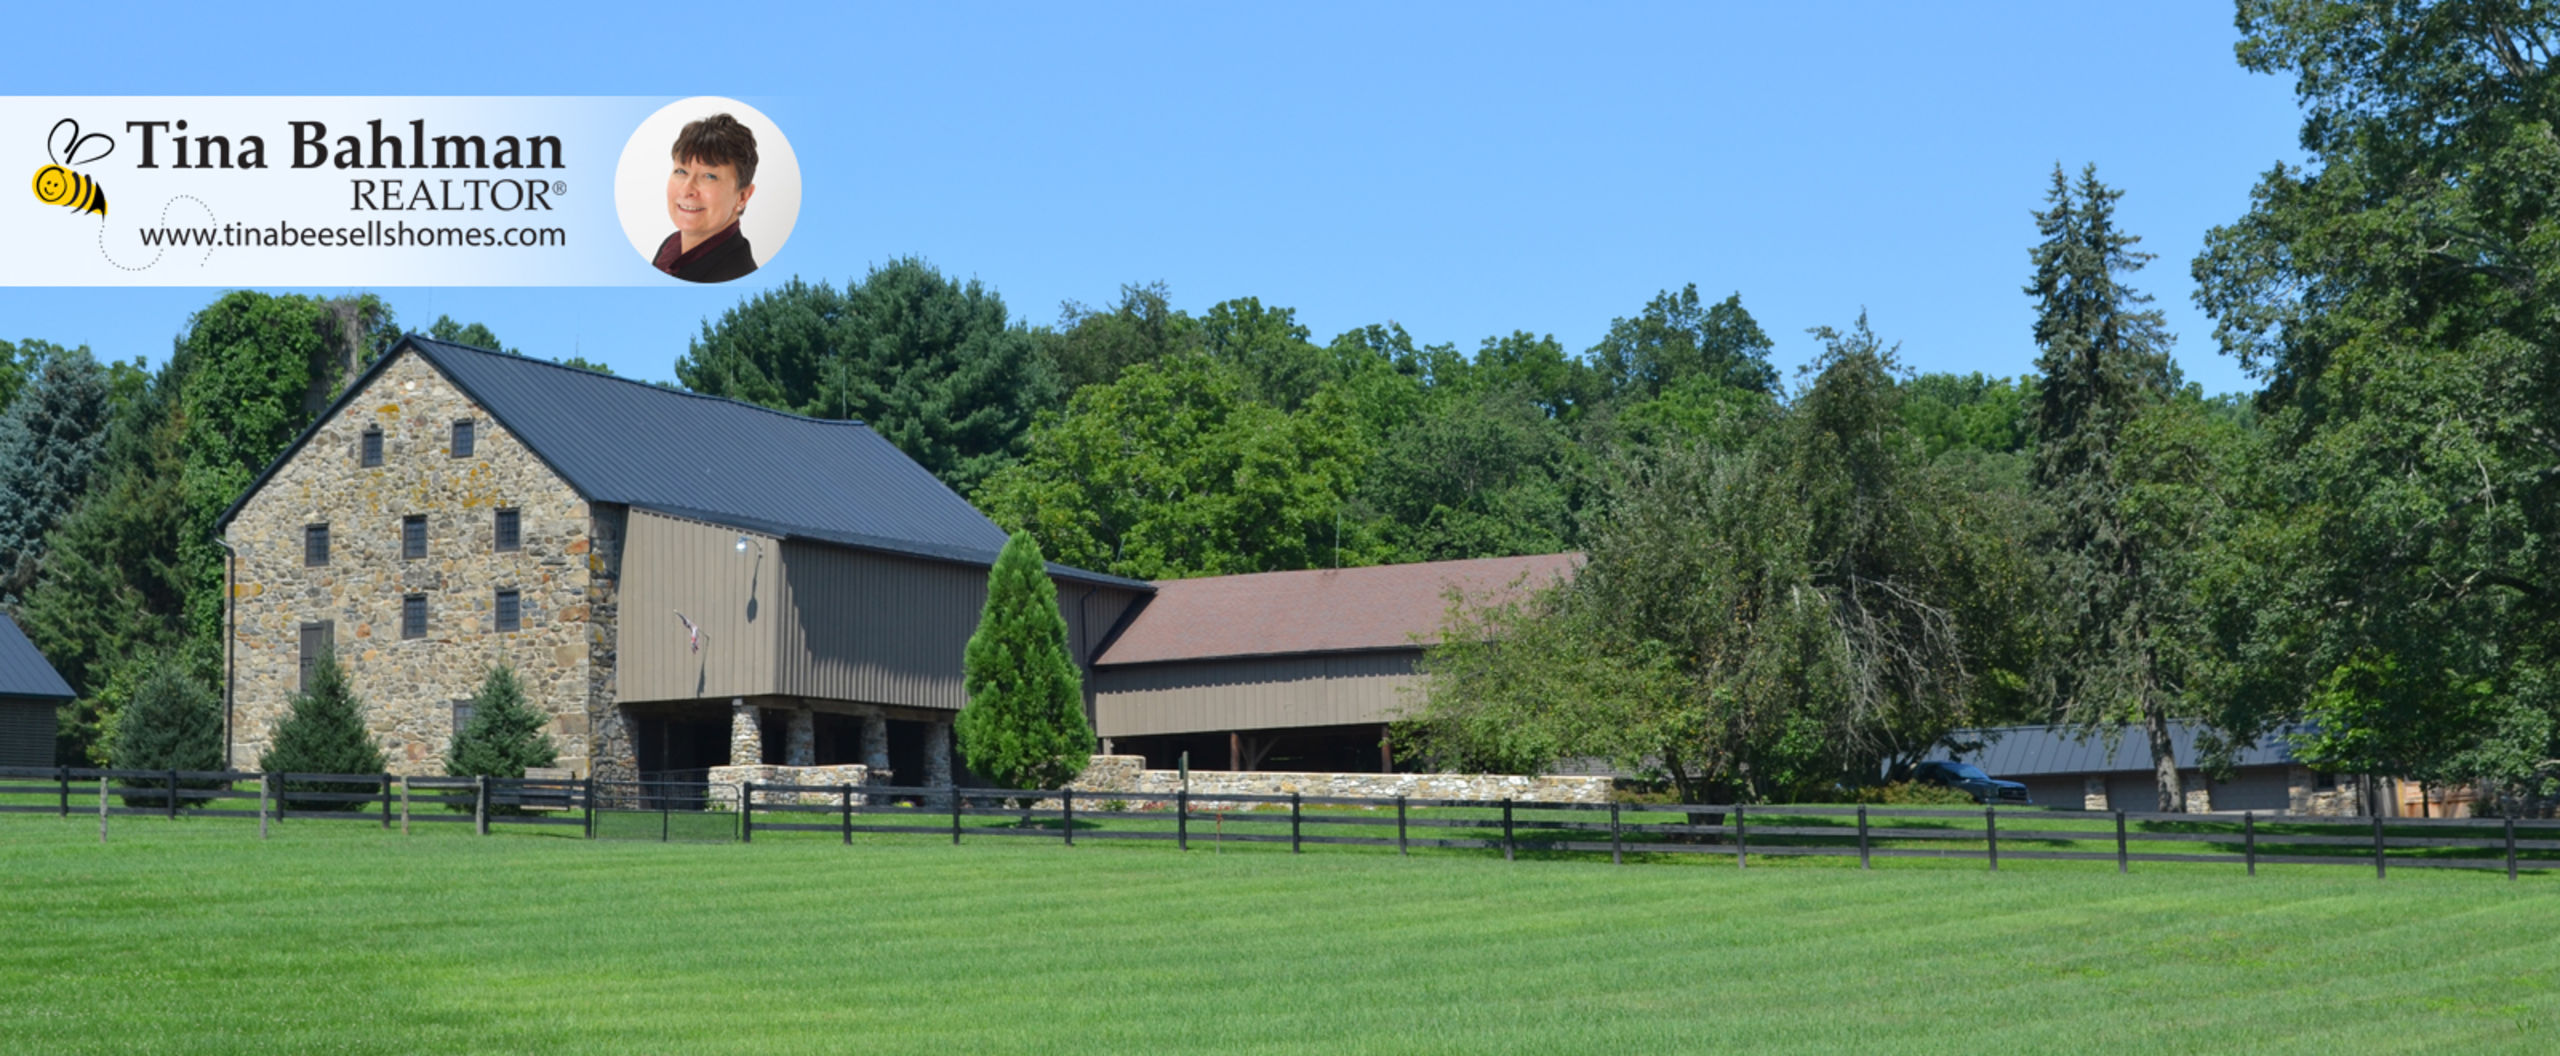 Bucolic Chester County